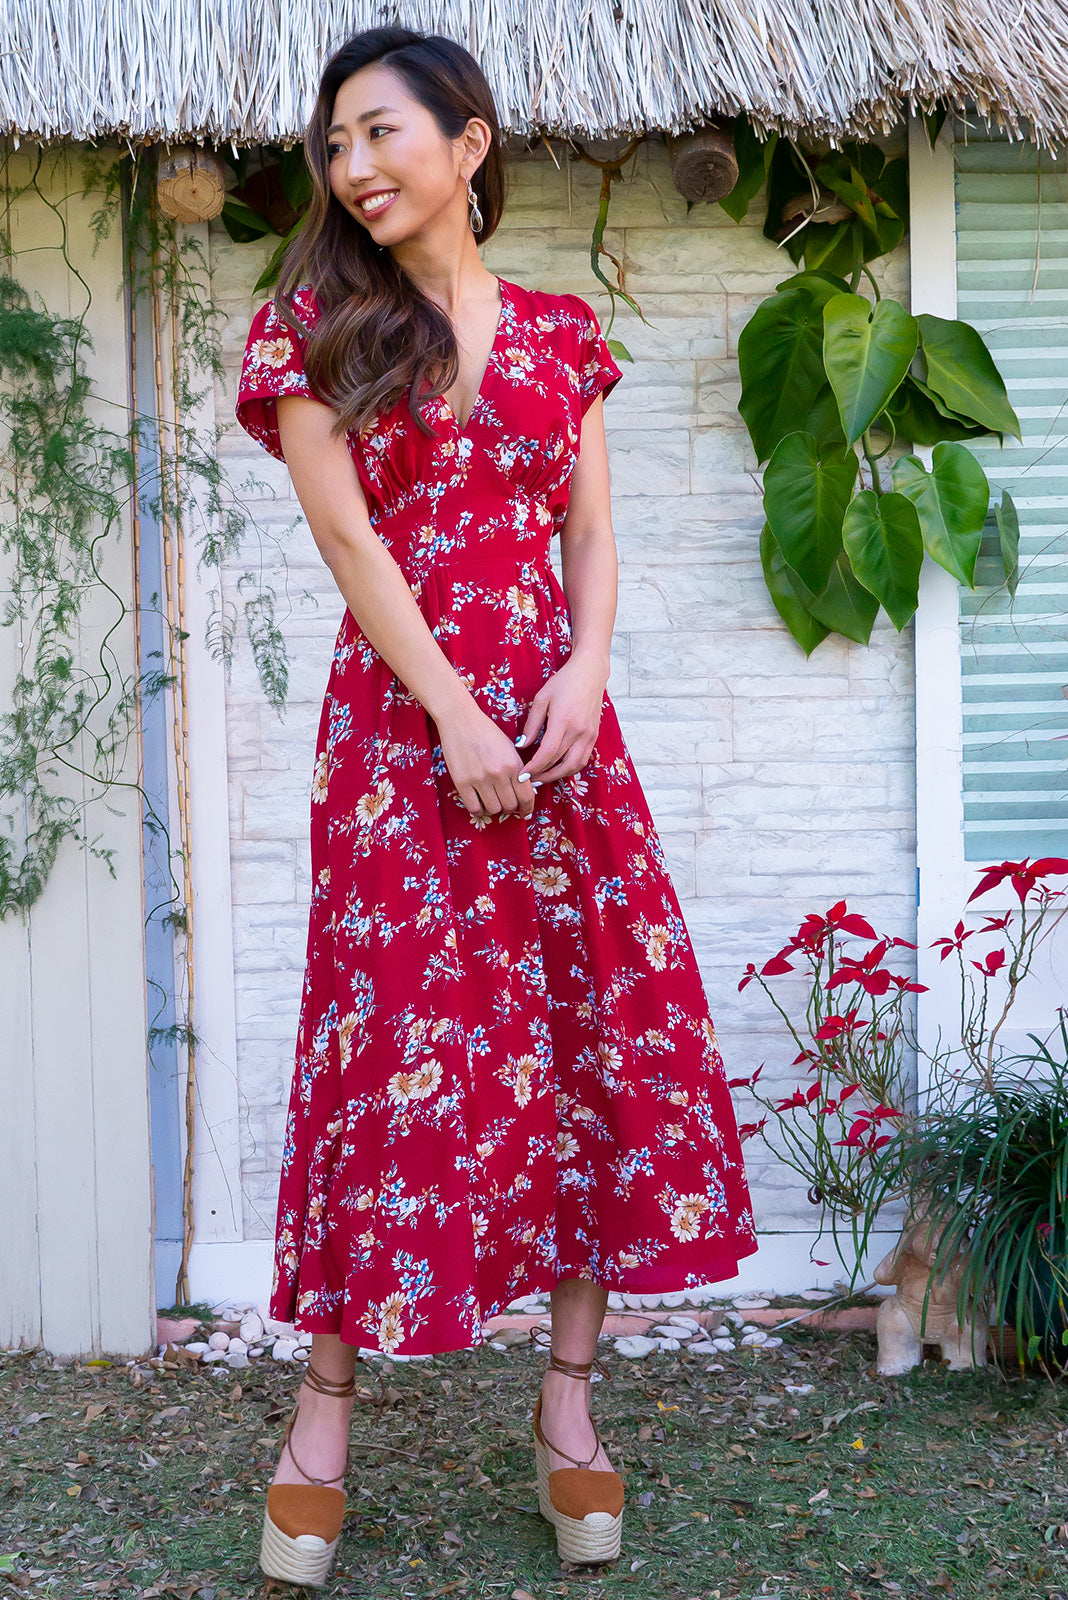 Lizzie Red Graces Midi dress features a vintage inspired fitted basque waist and elasticated waist with a cap sleeve and deep v neck the fabric is a soft woven rayon in a bright red floral print